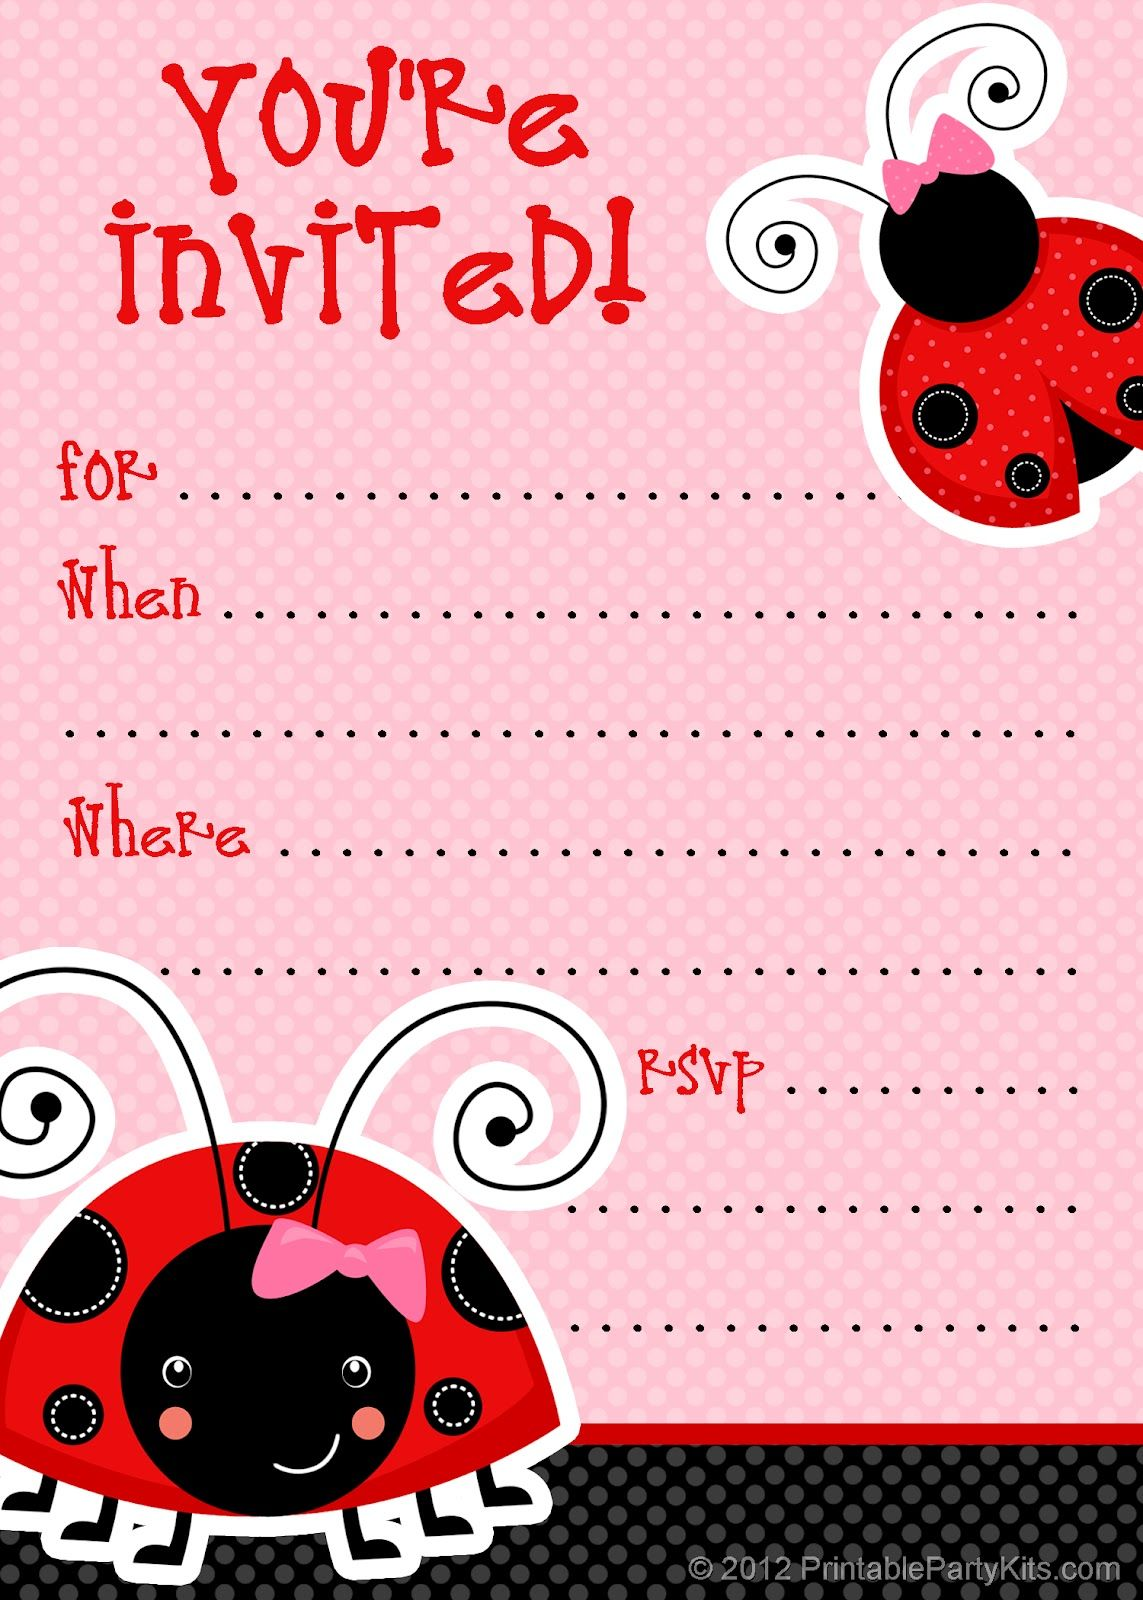 Free ladybug party invitations from PrintablePartyInvitations